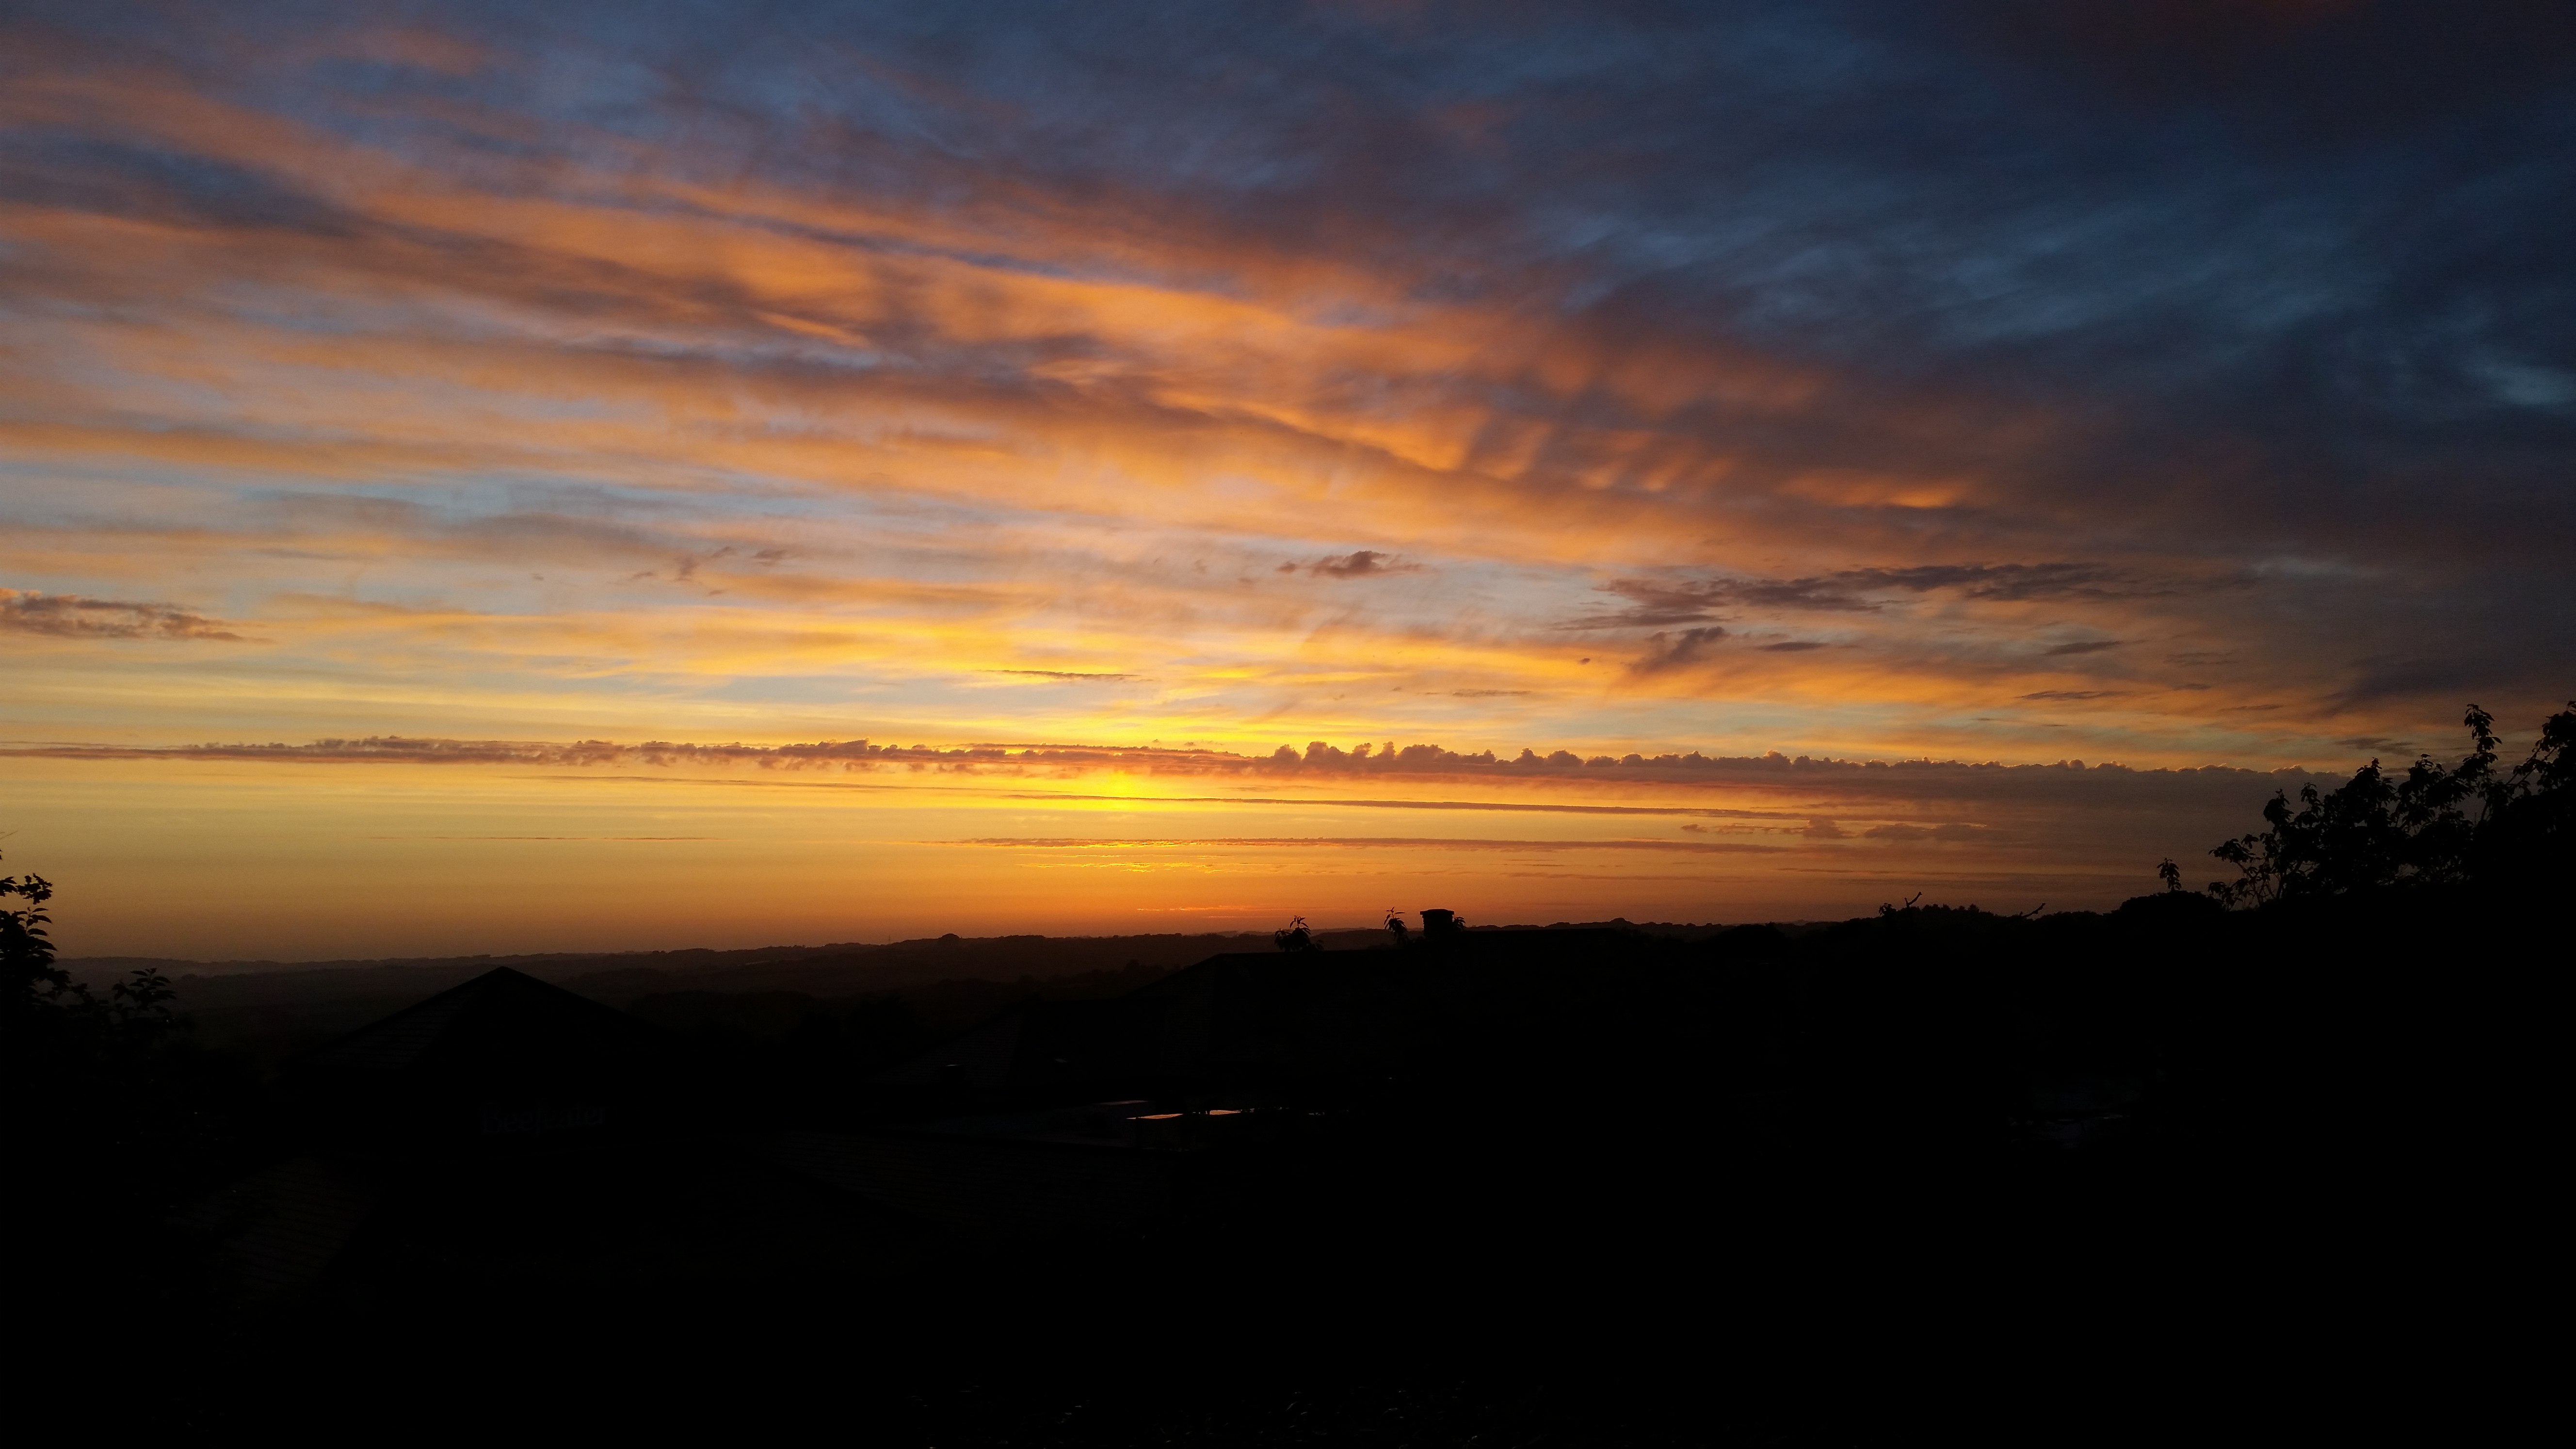 Sunset over carnon downs